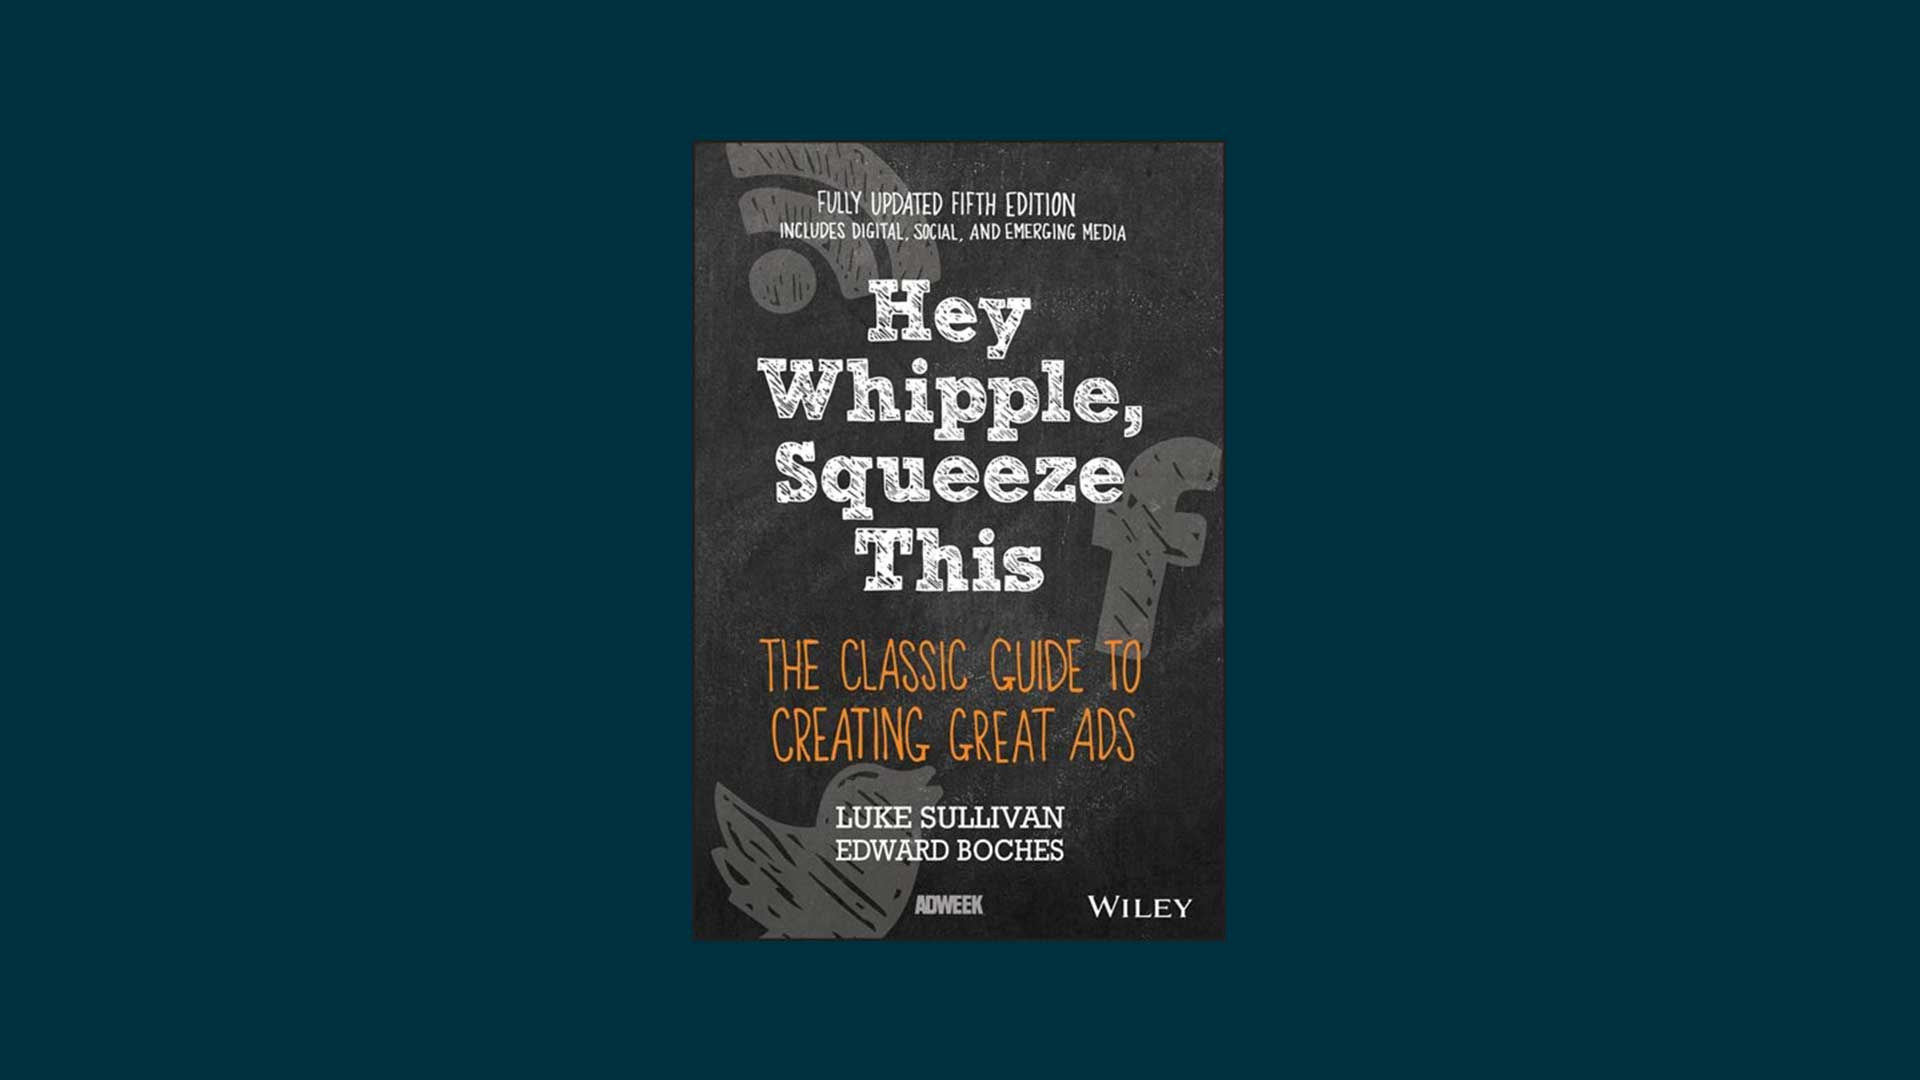 Hey Whipple, Squeeze This book.